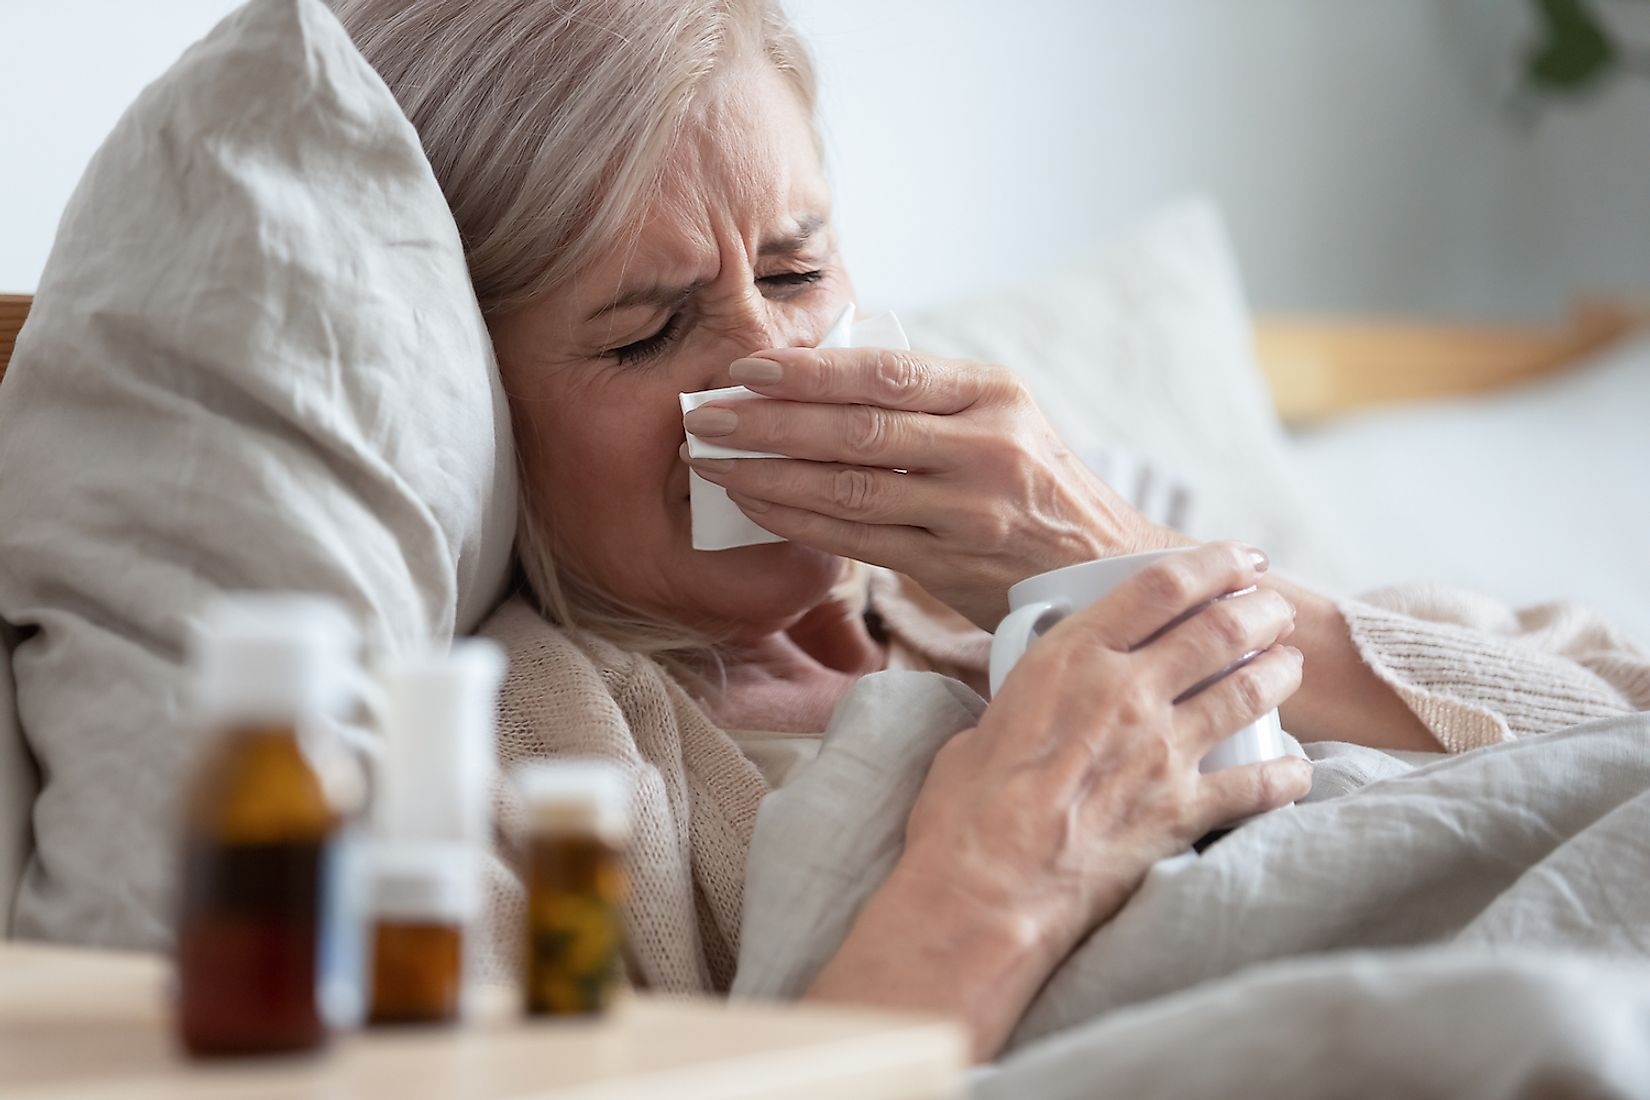 An elderly woman down with severe flu. Image credit: fizkes/Shutterstock.com